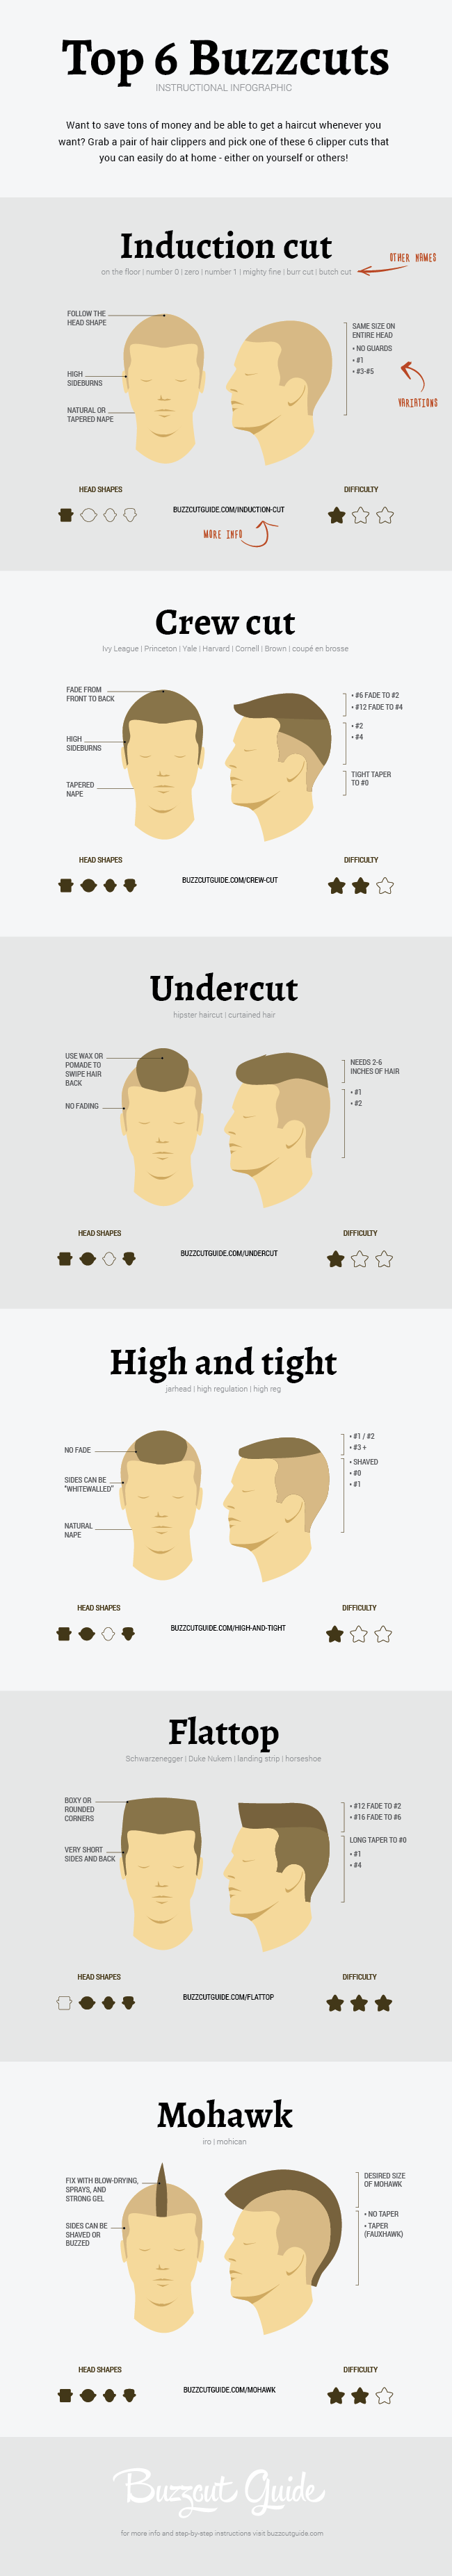 Infographic about clippercuts or buzzcuts